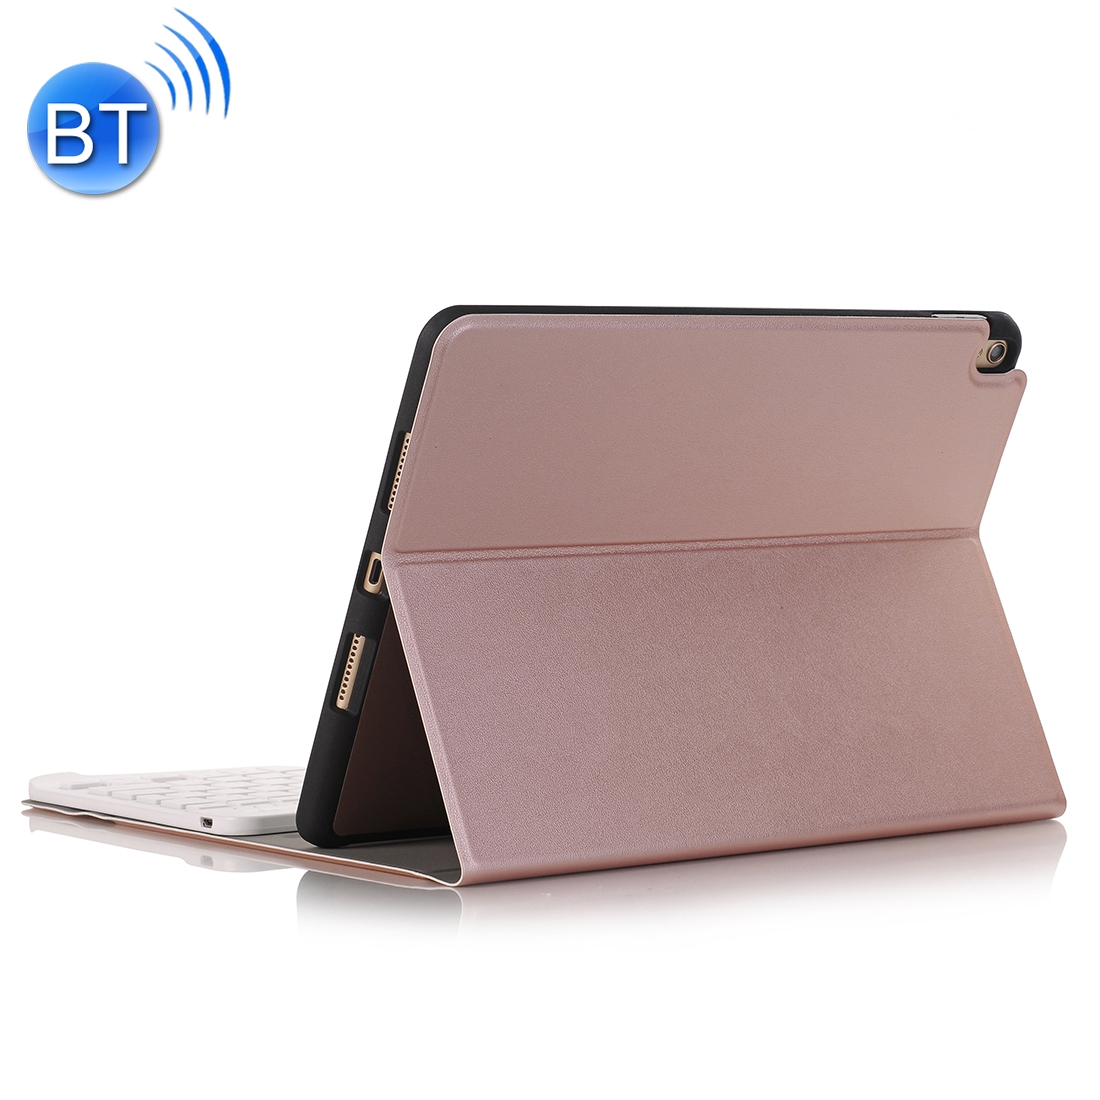 iPad Pro 12.9 Case With Keyboard (2018-20) With Leather Case & Thin Keyboard